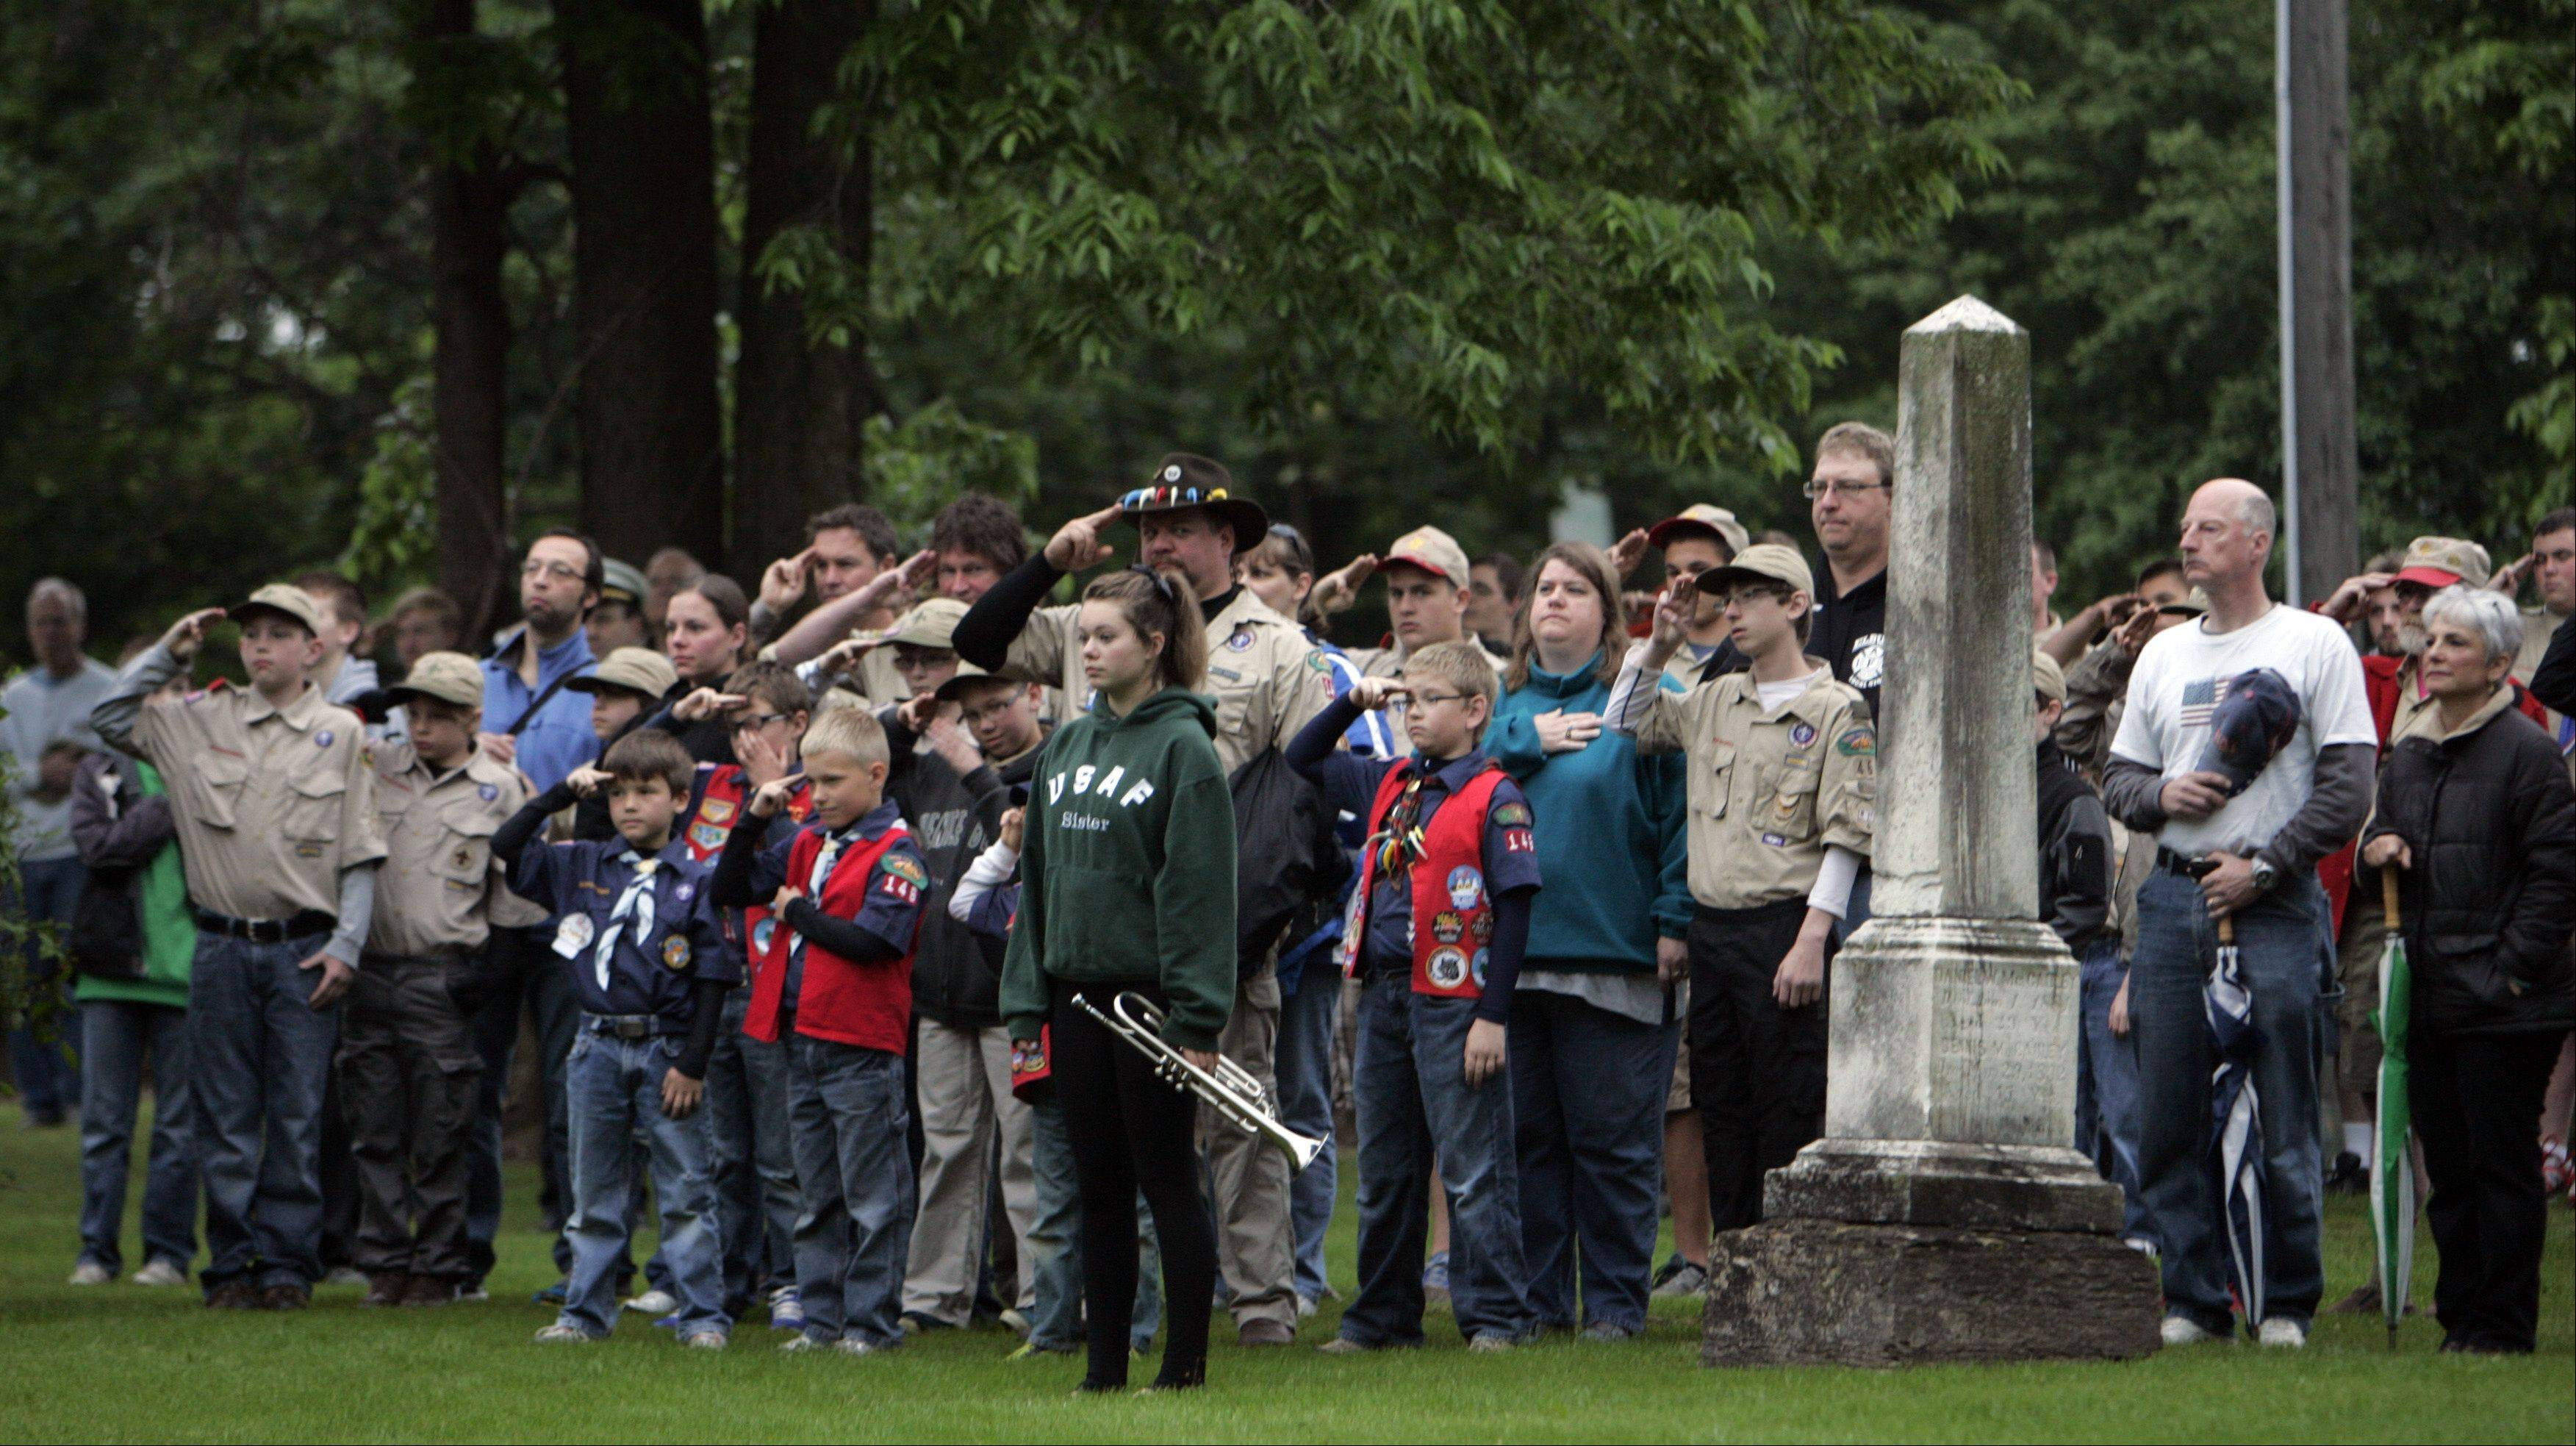 A large crowd turned out for the Memorial Day celebration at South Cemetery in St. Charles early Monday morning.